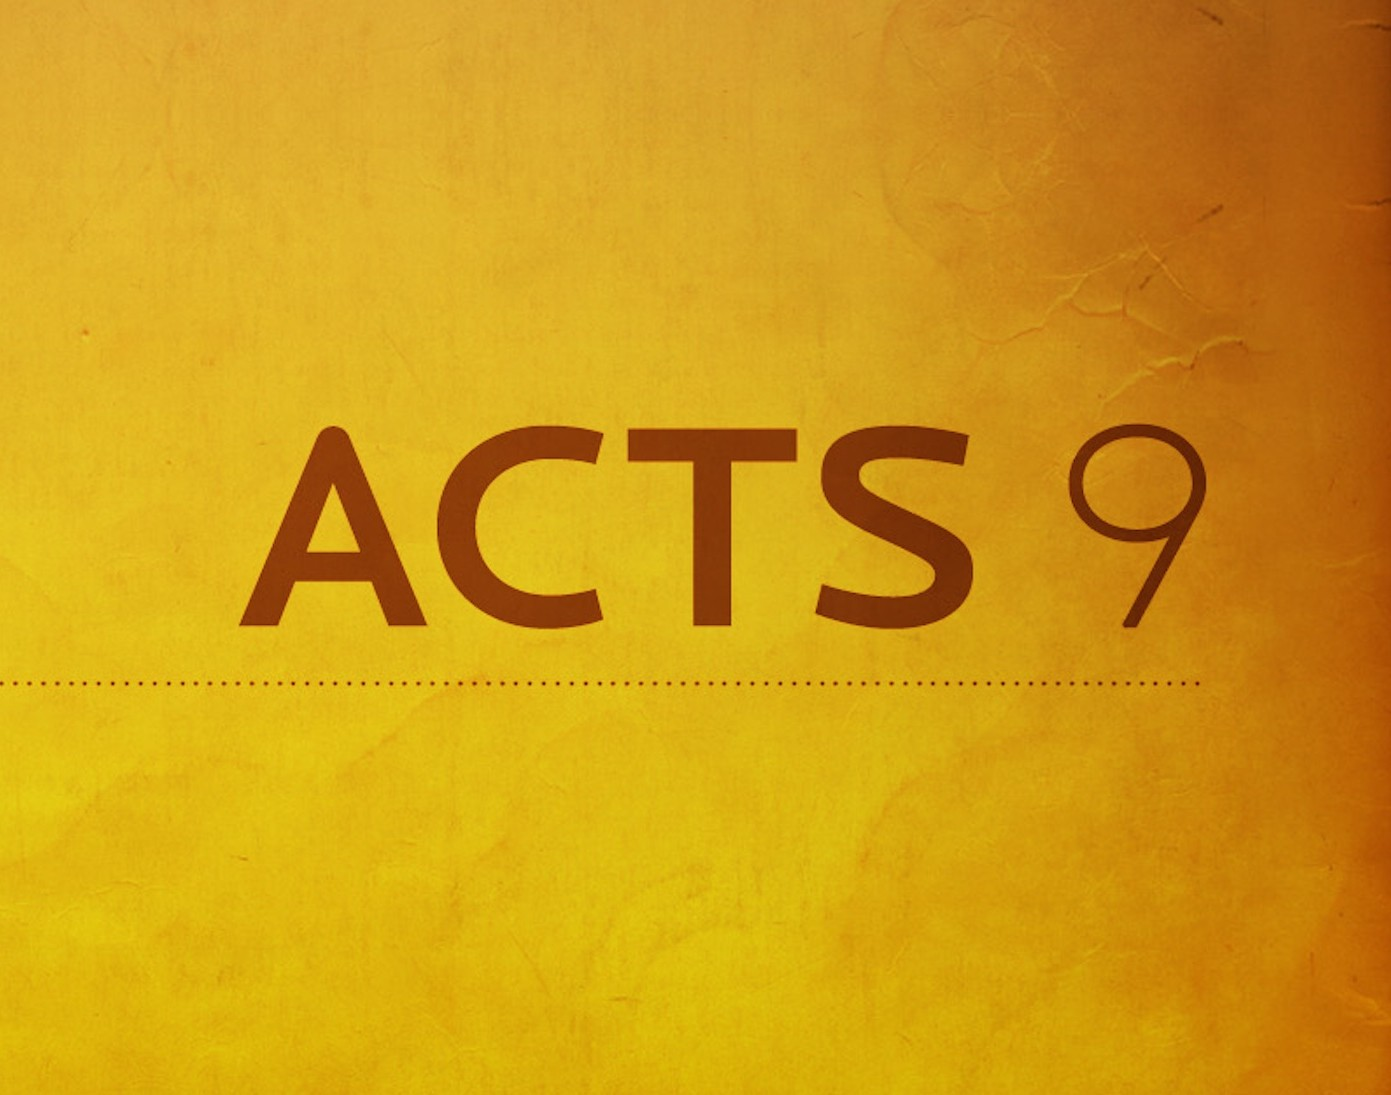 From Saul to Paul – Acts 9